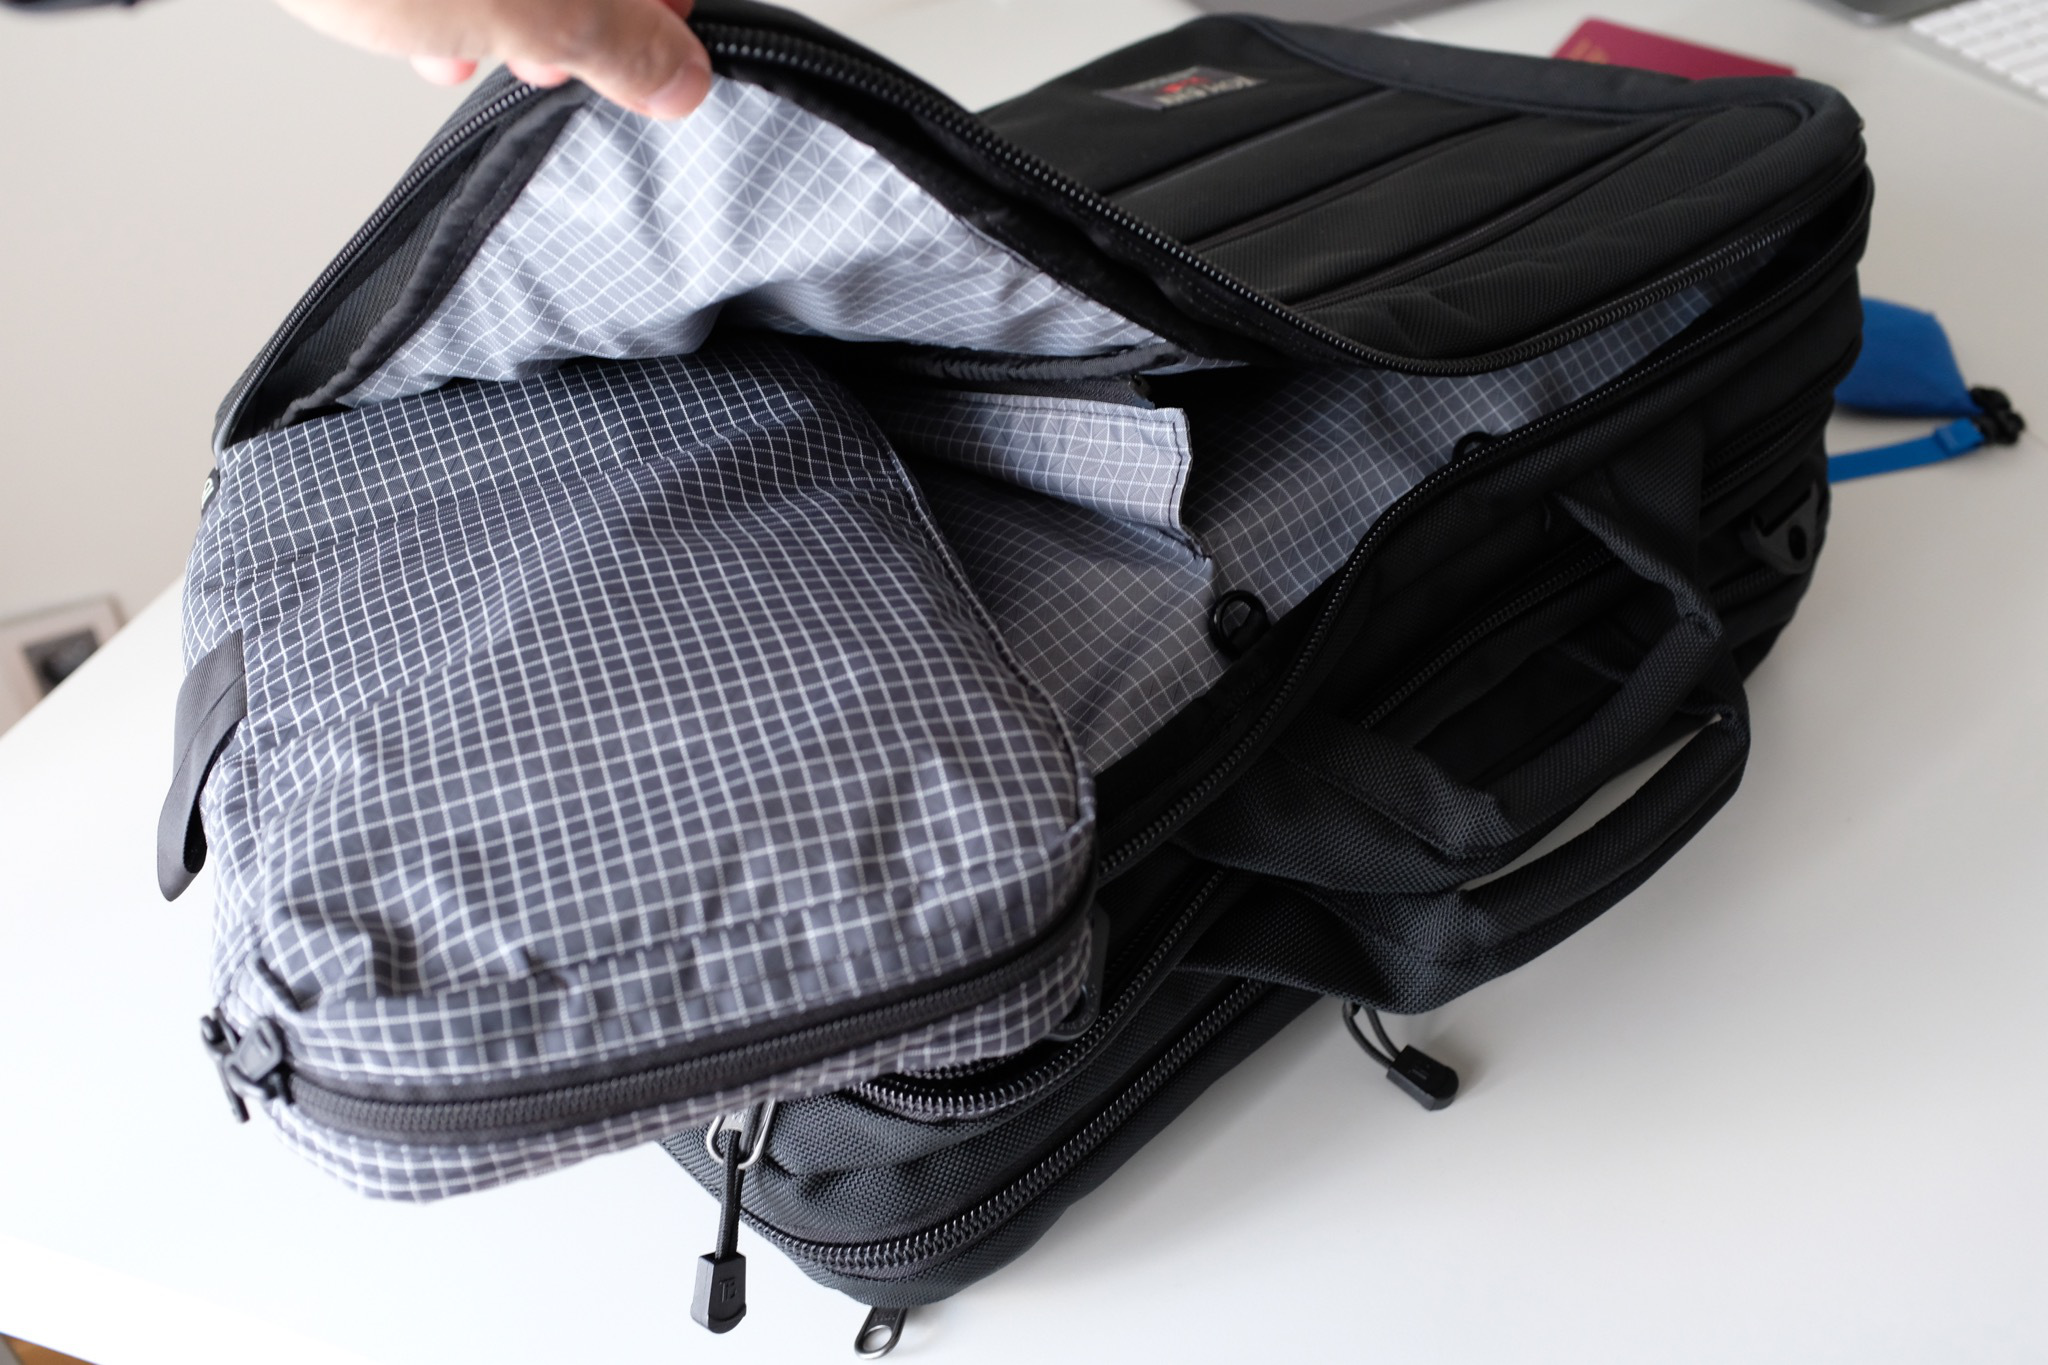 The front compartment has a divider which you can use to separate your clothing. There are also custom fitted packing cubes for each divided section.